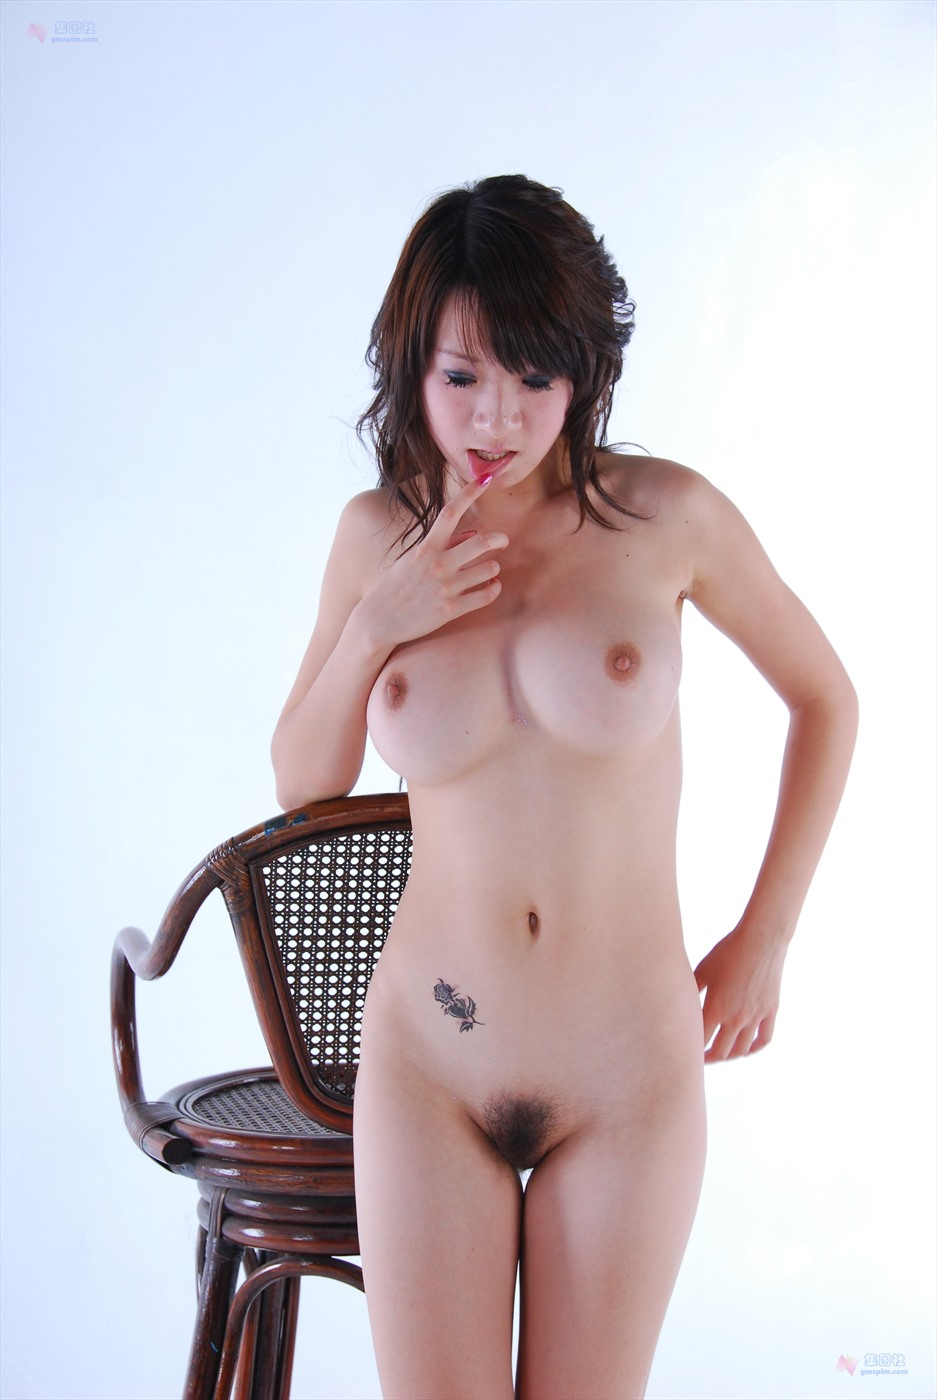 didi escort gratis video